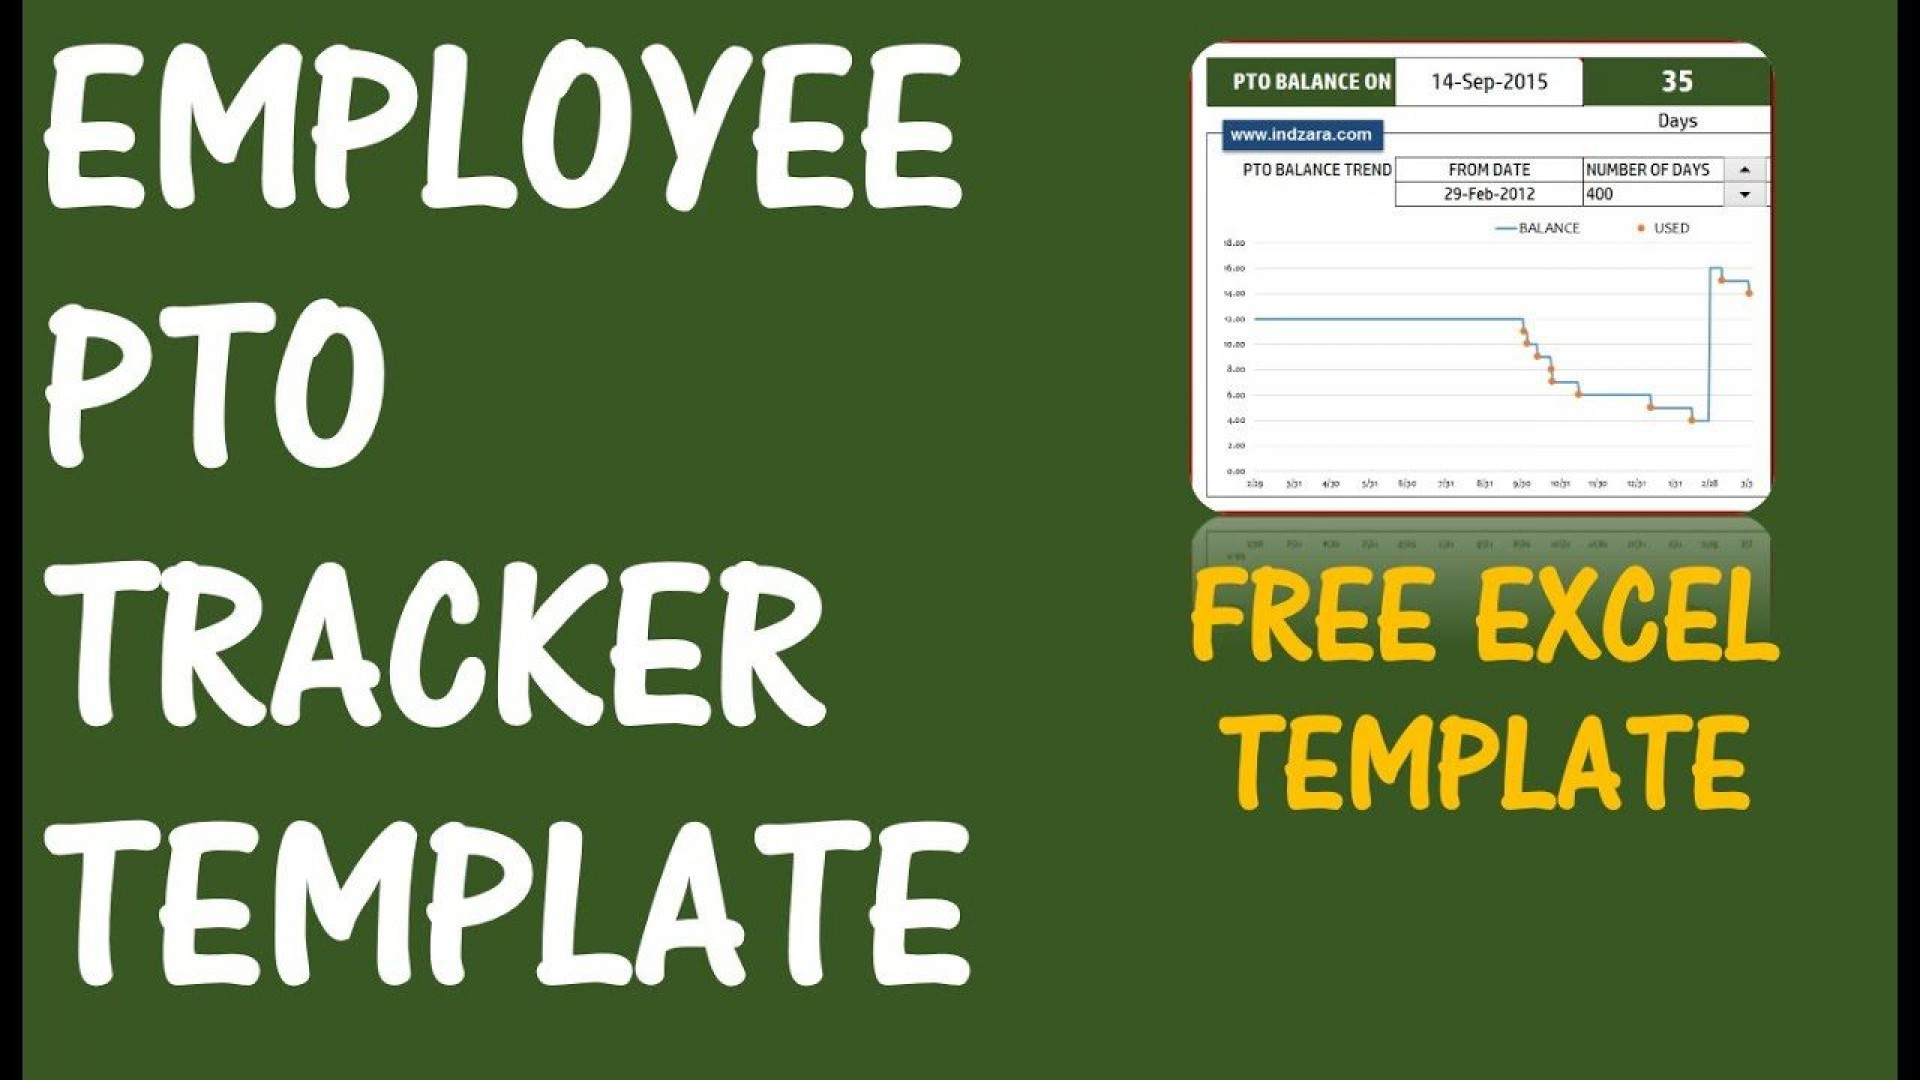 002 Formidable Excel Pto Tracker Template Photo  Employee Vacation Spreadsheet 2019 Free1920